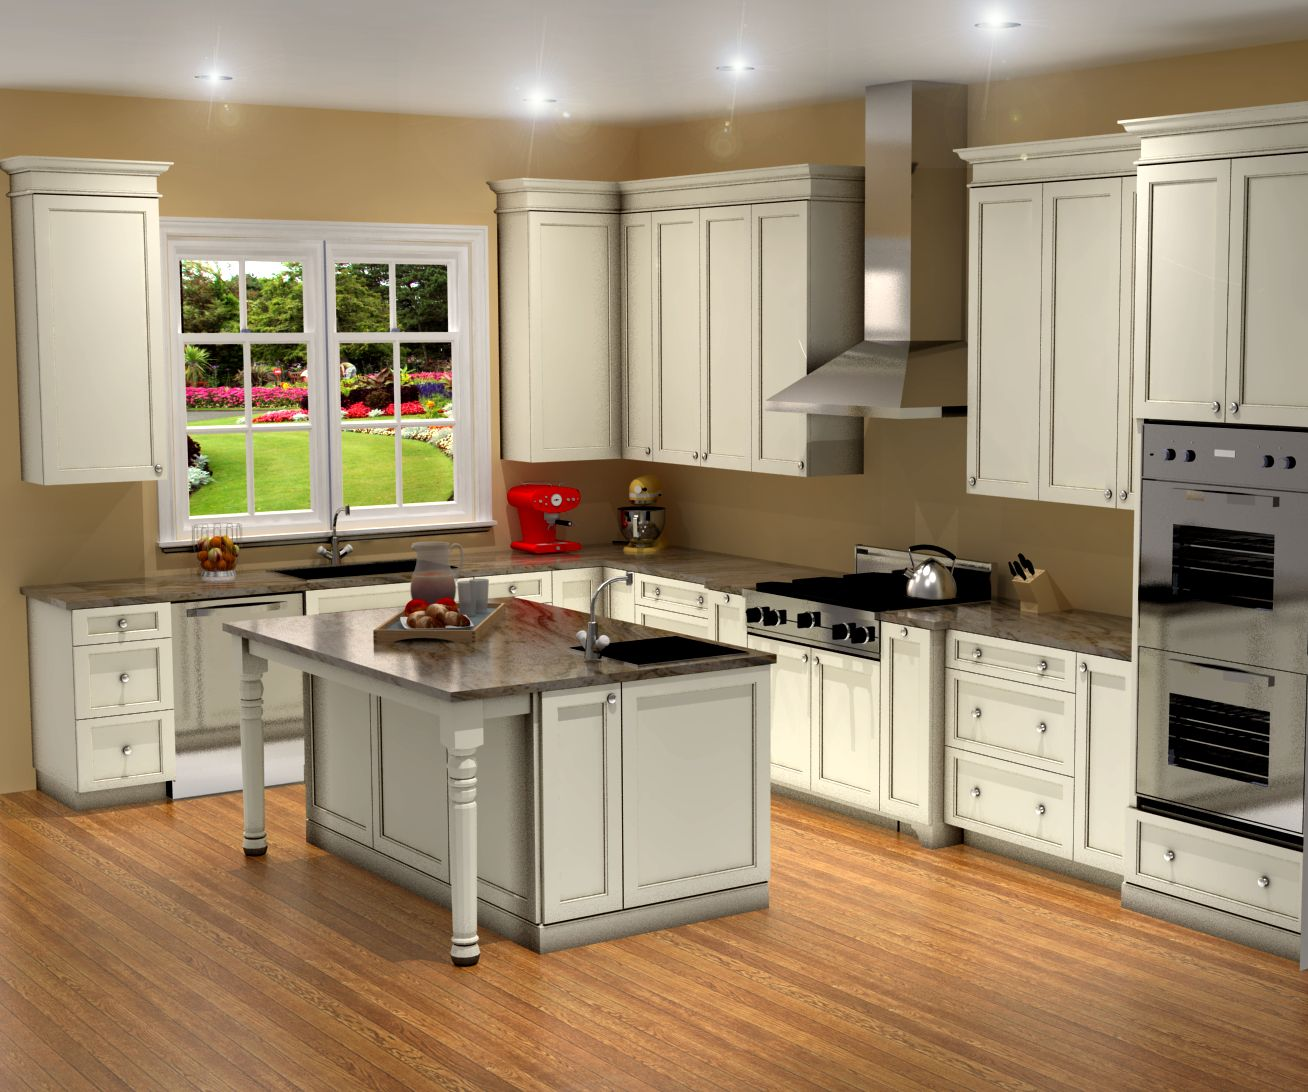 traditional white kitchen design 3d rendering 1433